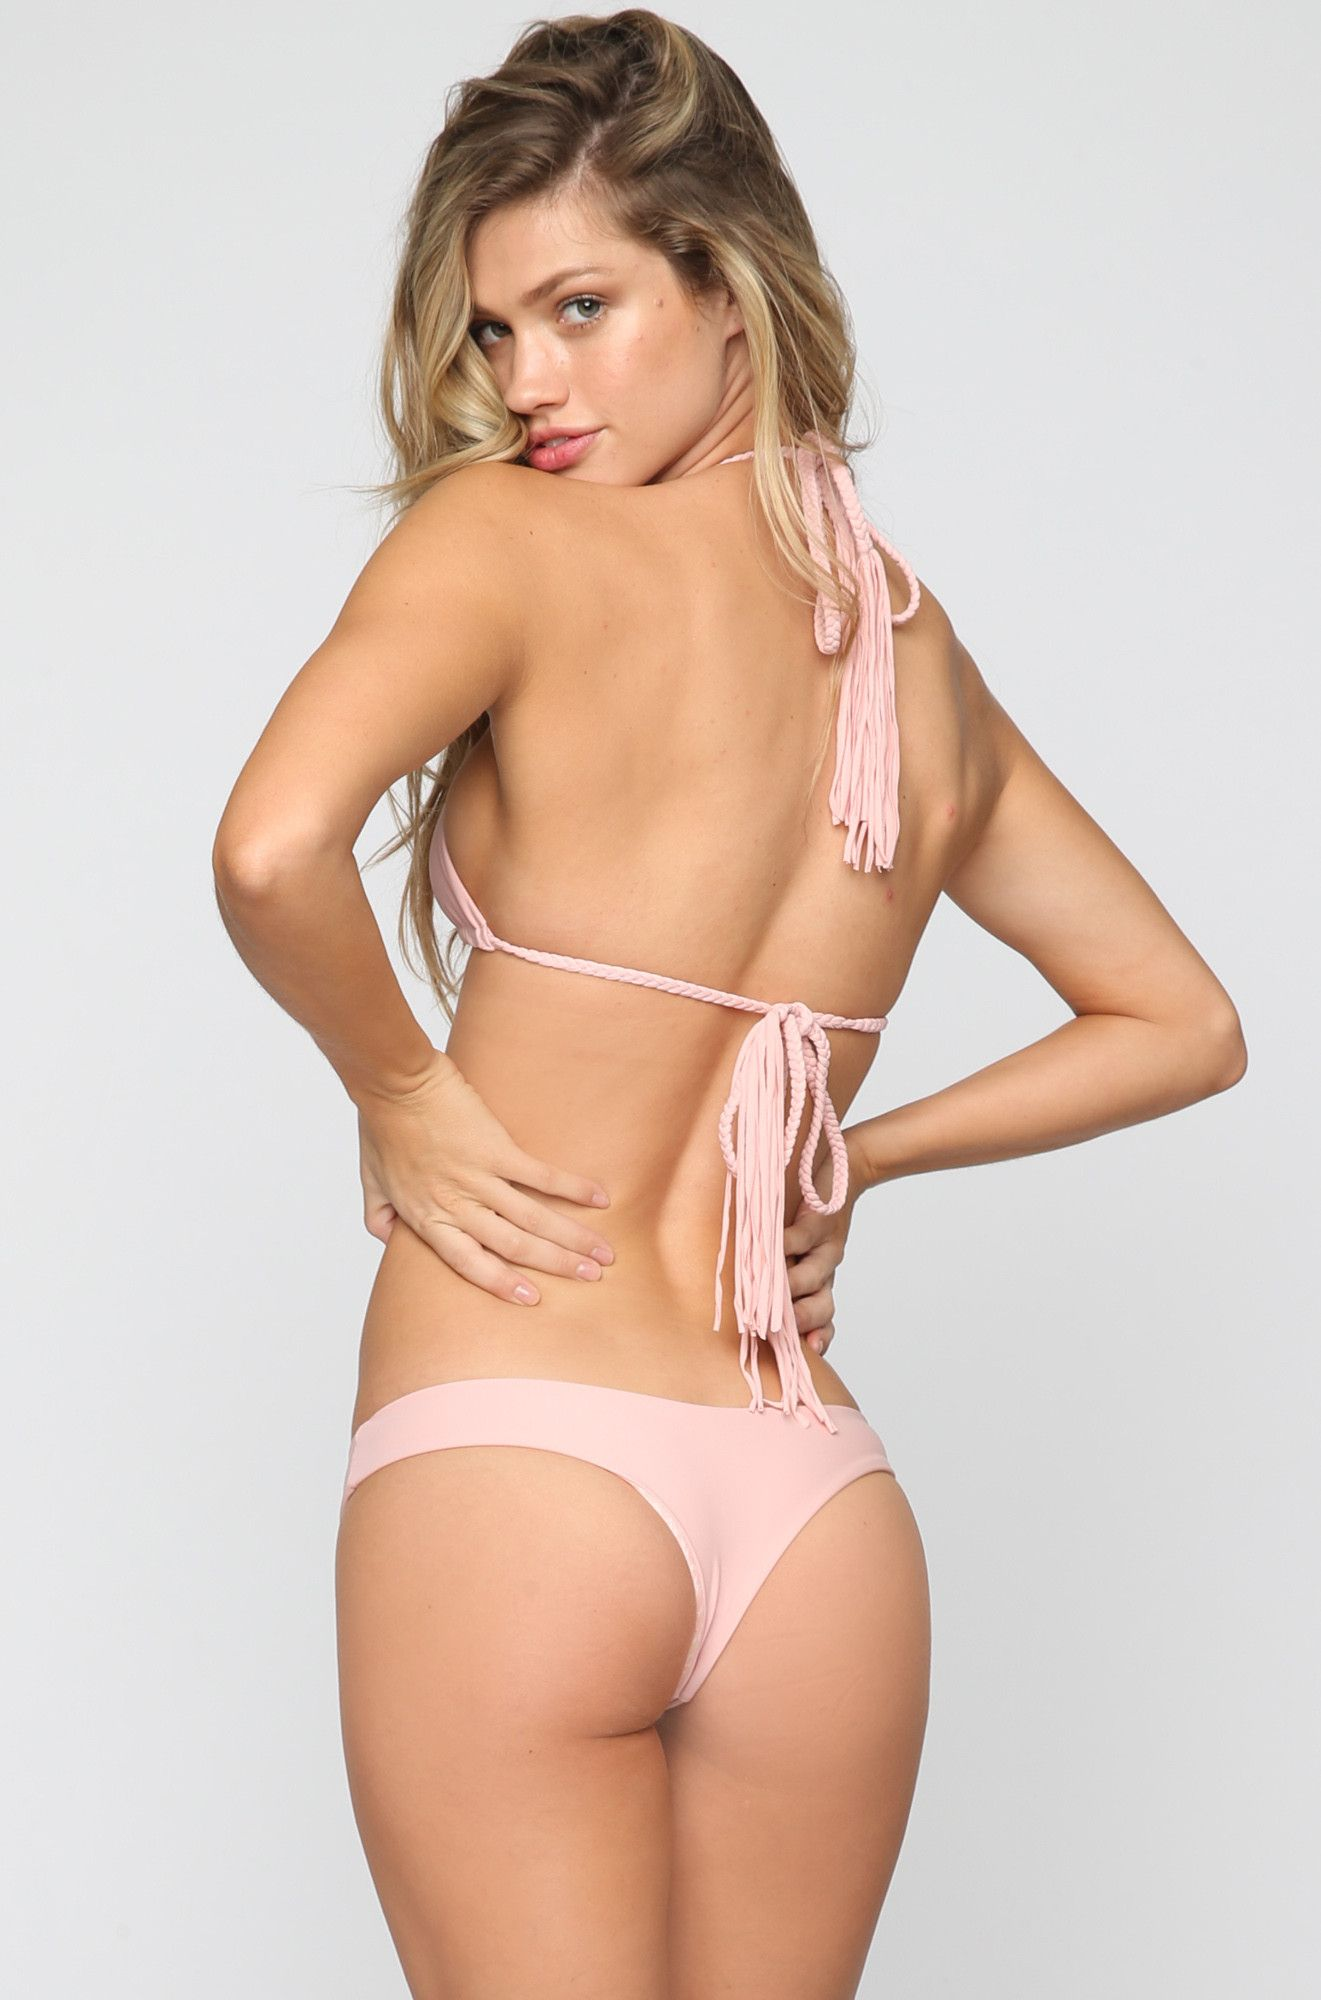 2019 Maggie Rawlins nudes (44 foto and video), Ass, Fappening, Twitter, see through 2017